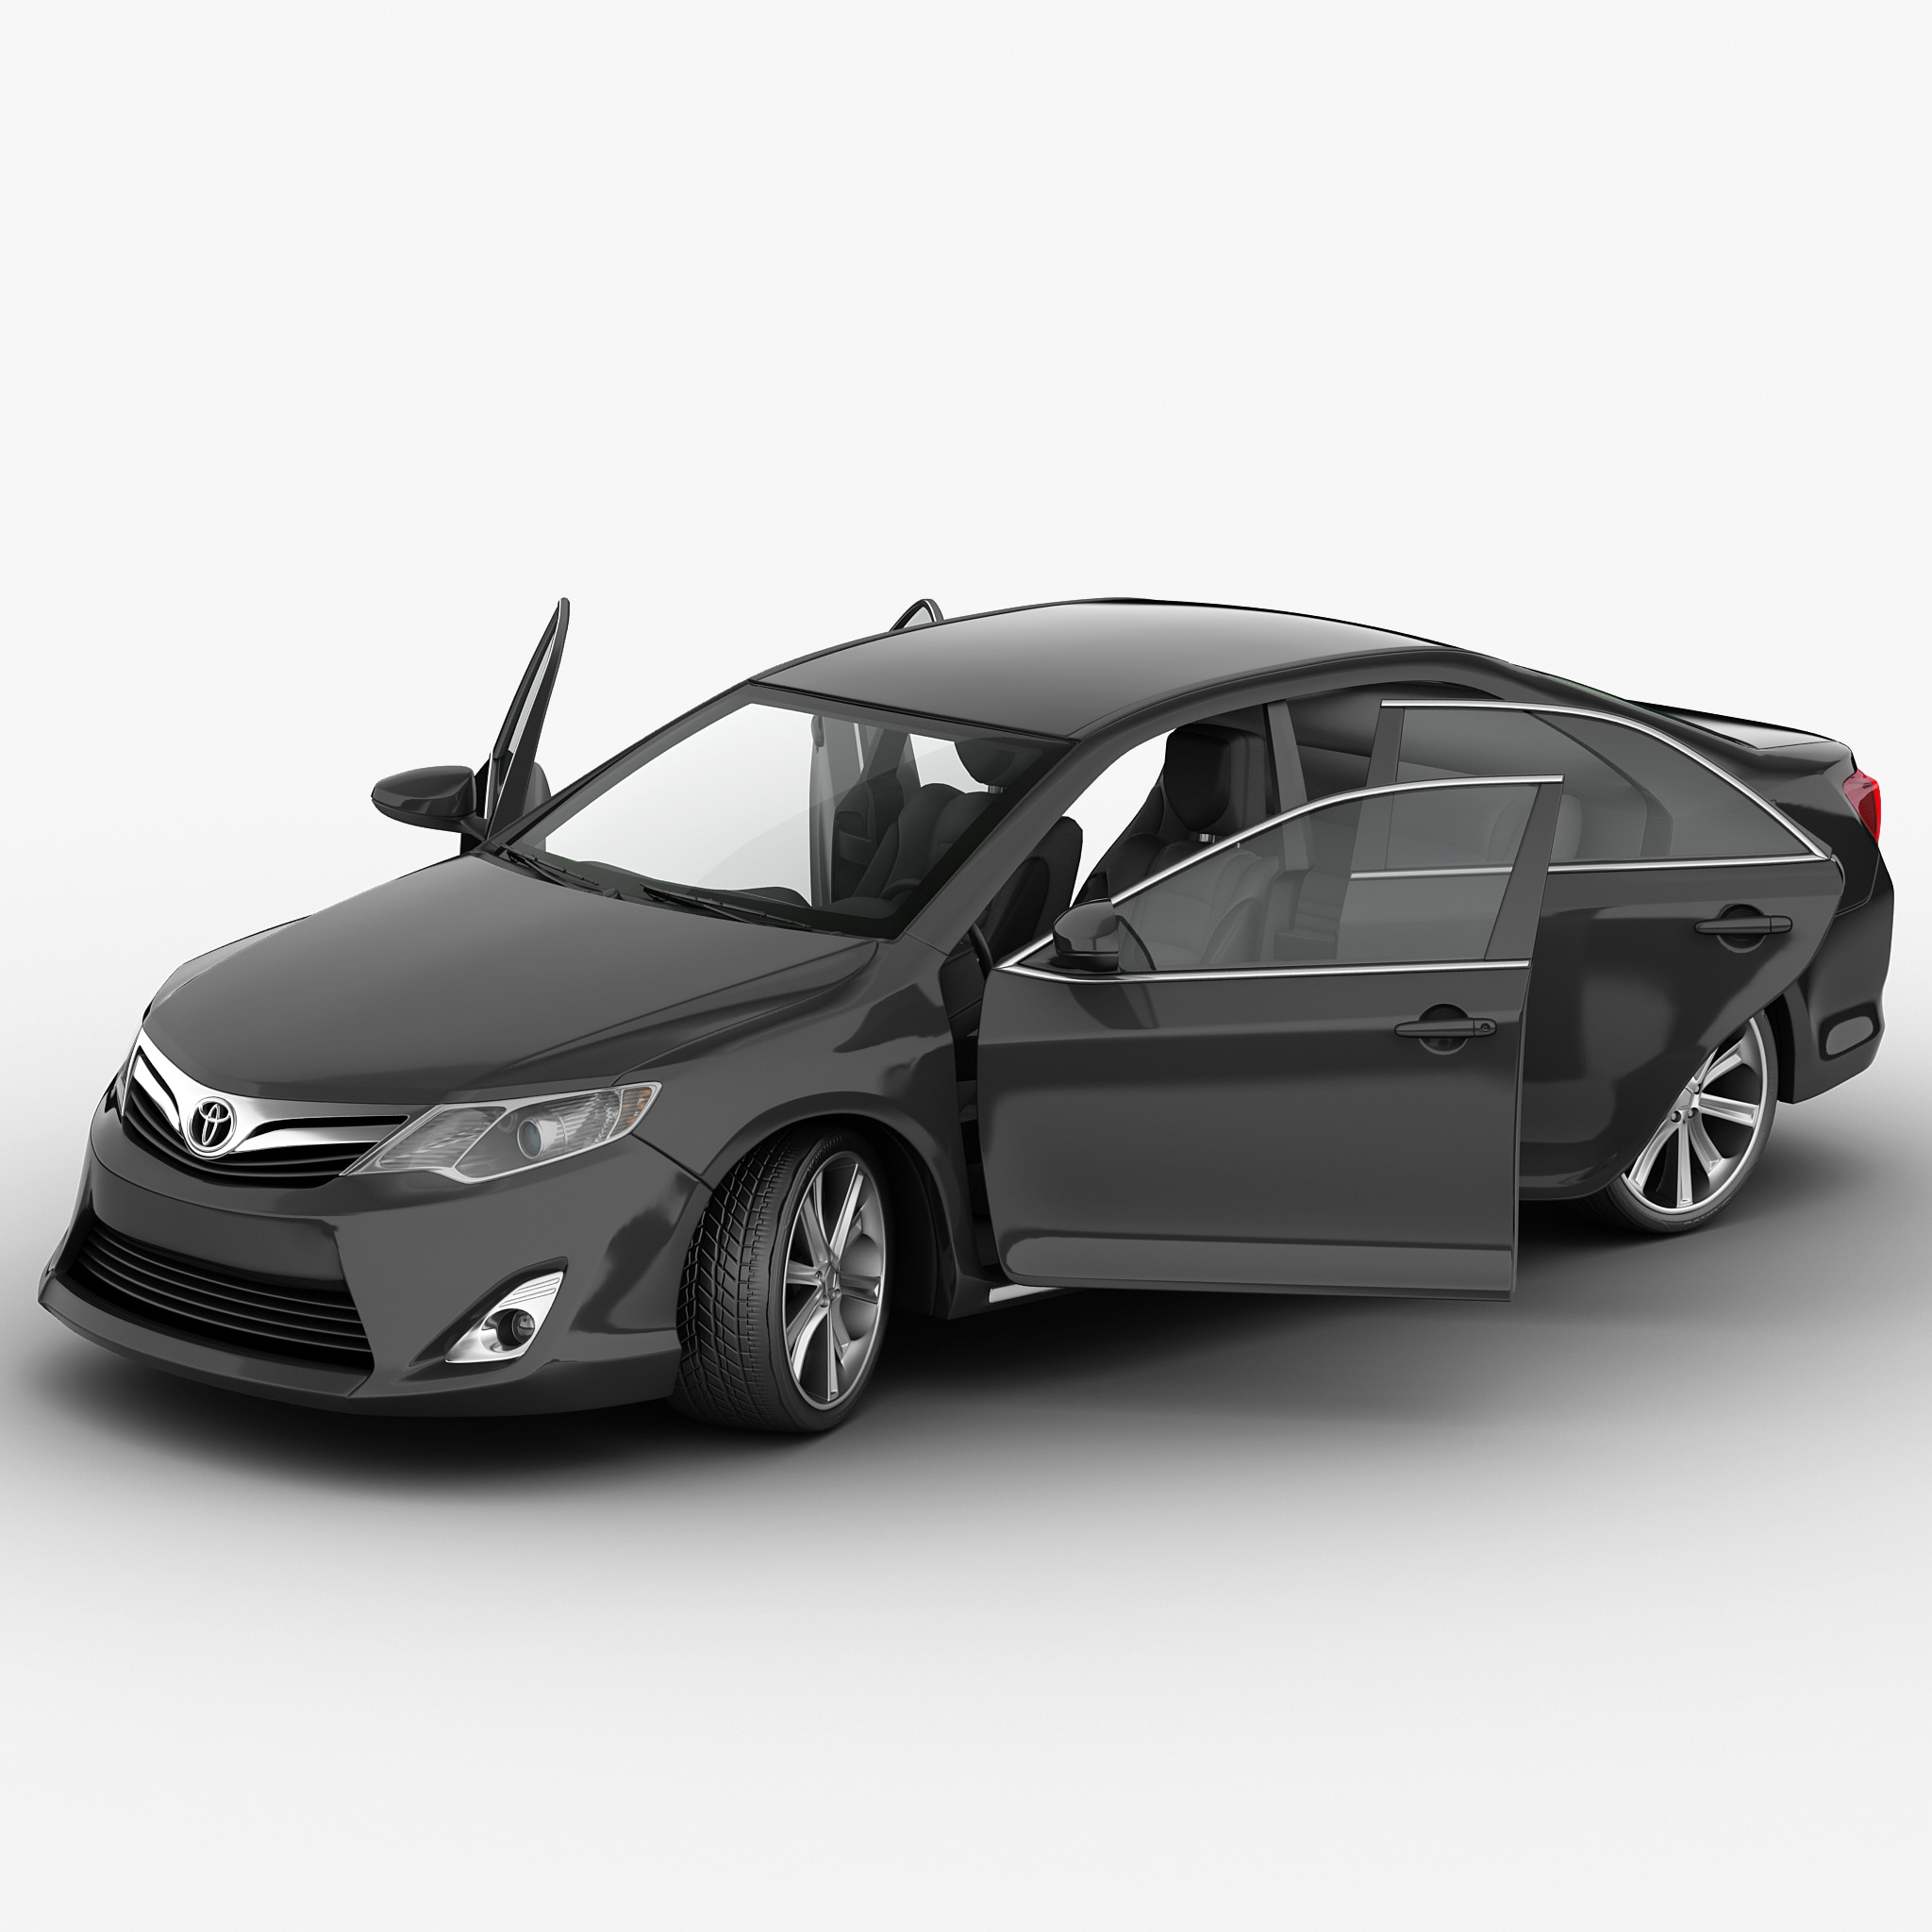 Toyota Camry 2012 Rigged_5.jpg